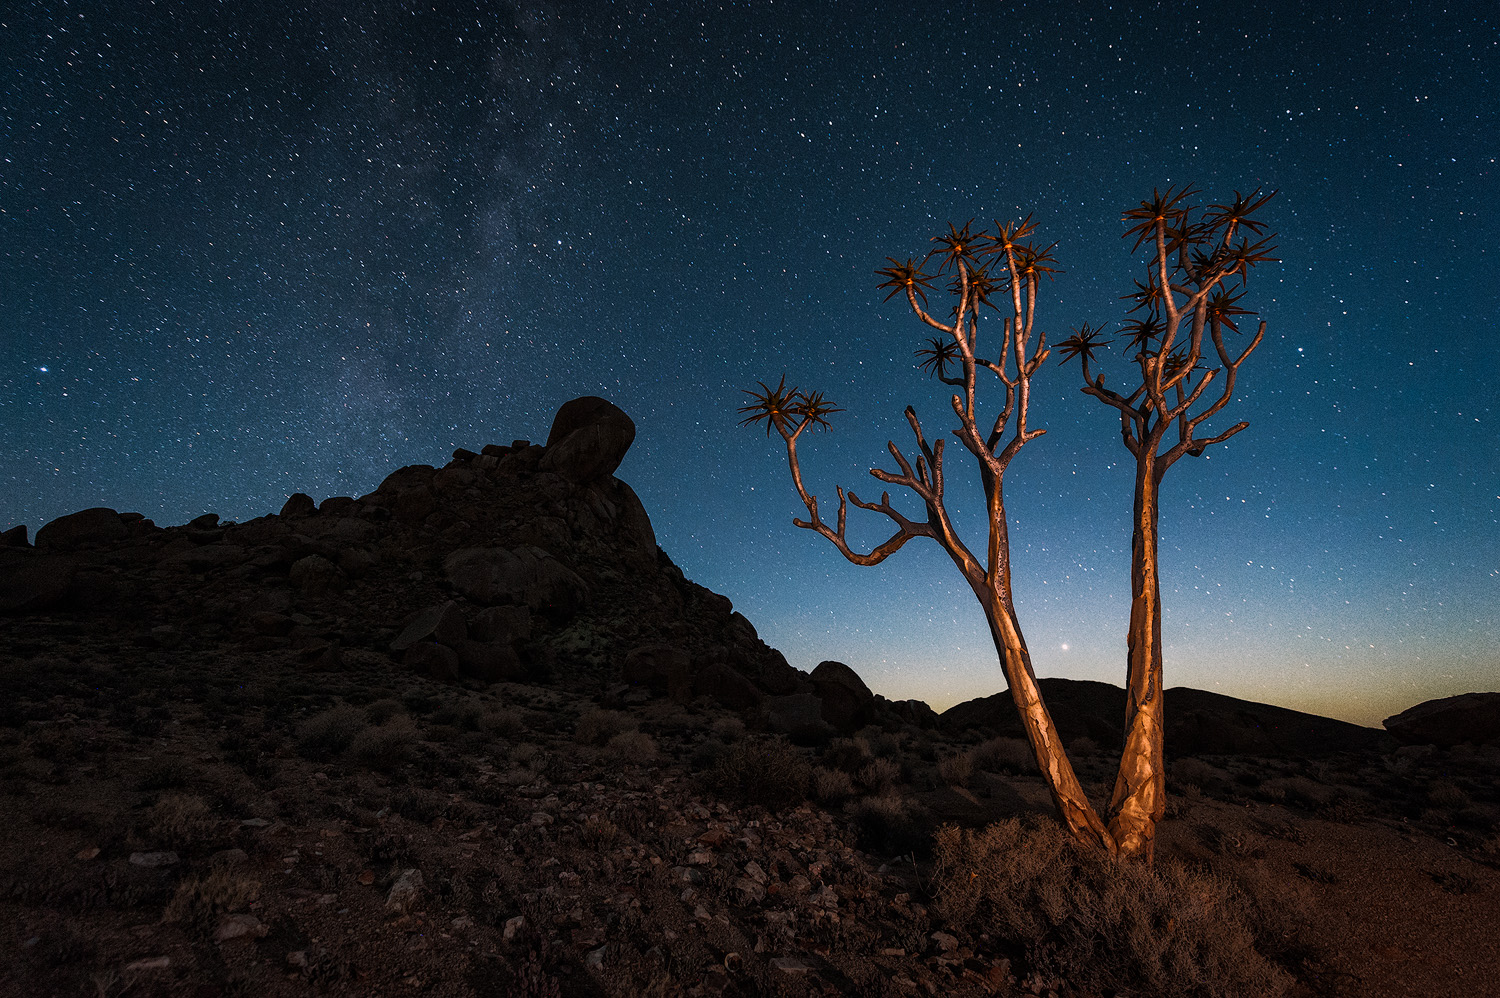 Nocturnal Richtersveld